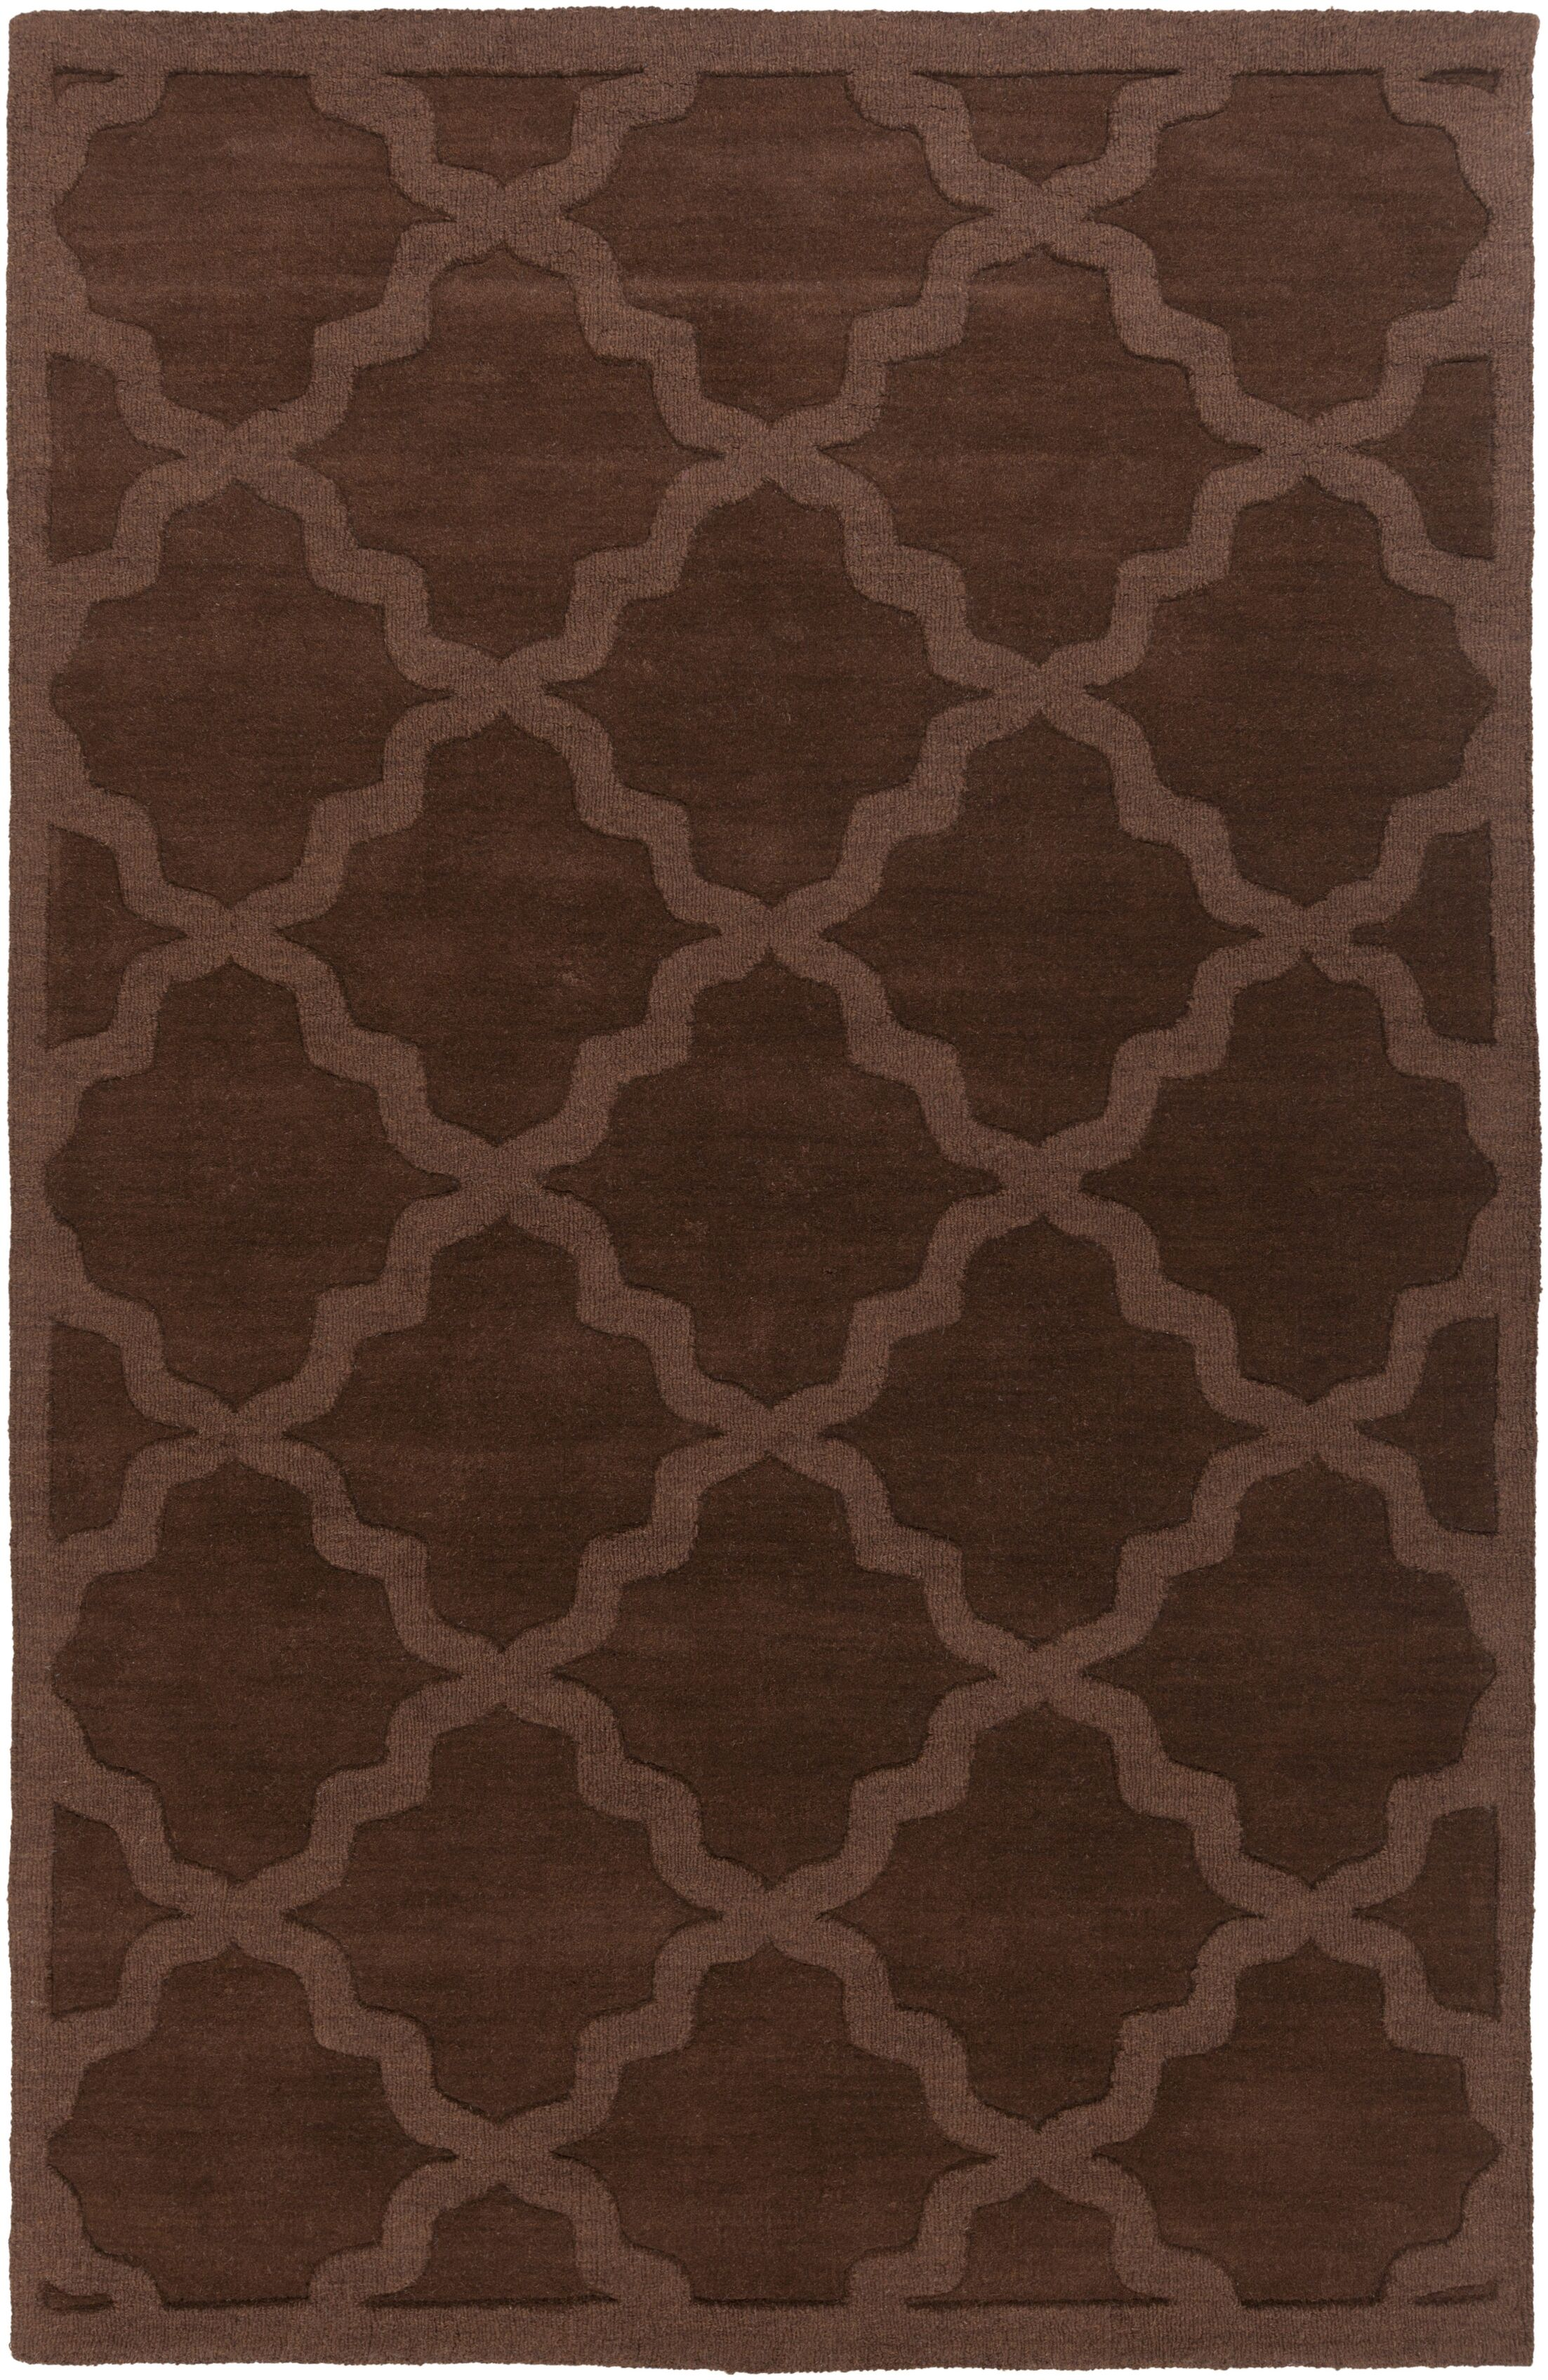 Blankenship Brown Geometric Abbey Area Rug Rug Size: Rectangle 10' x 14'